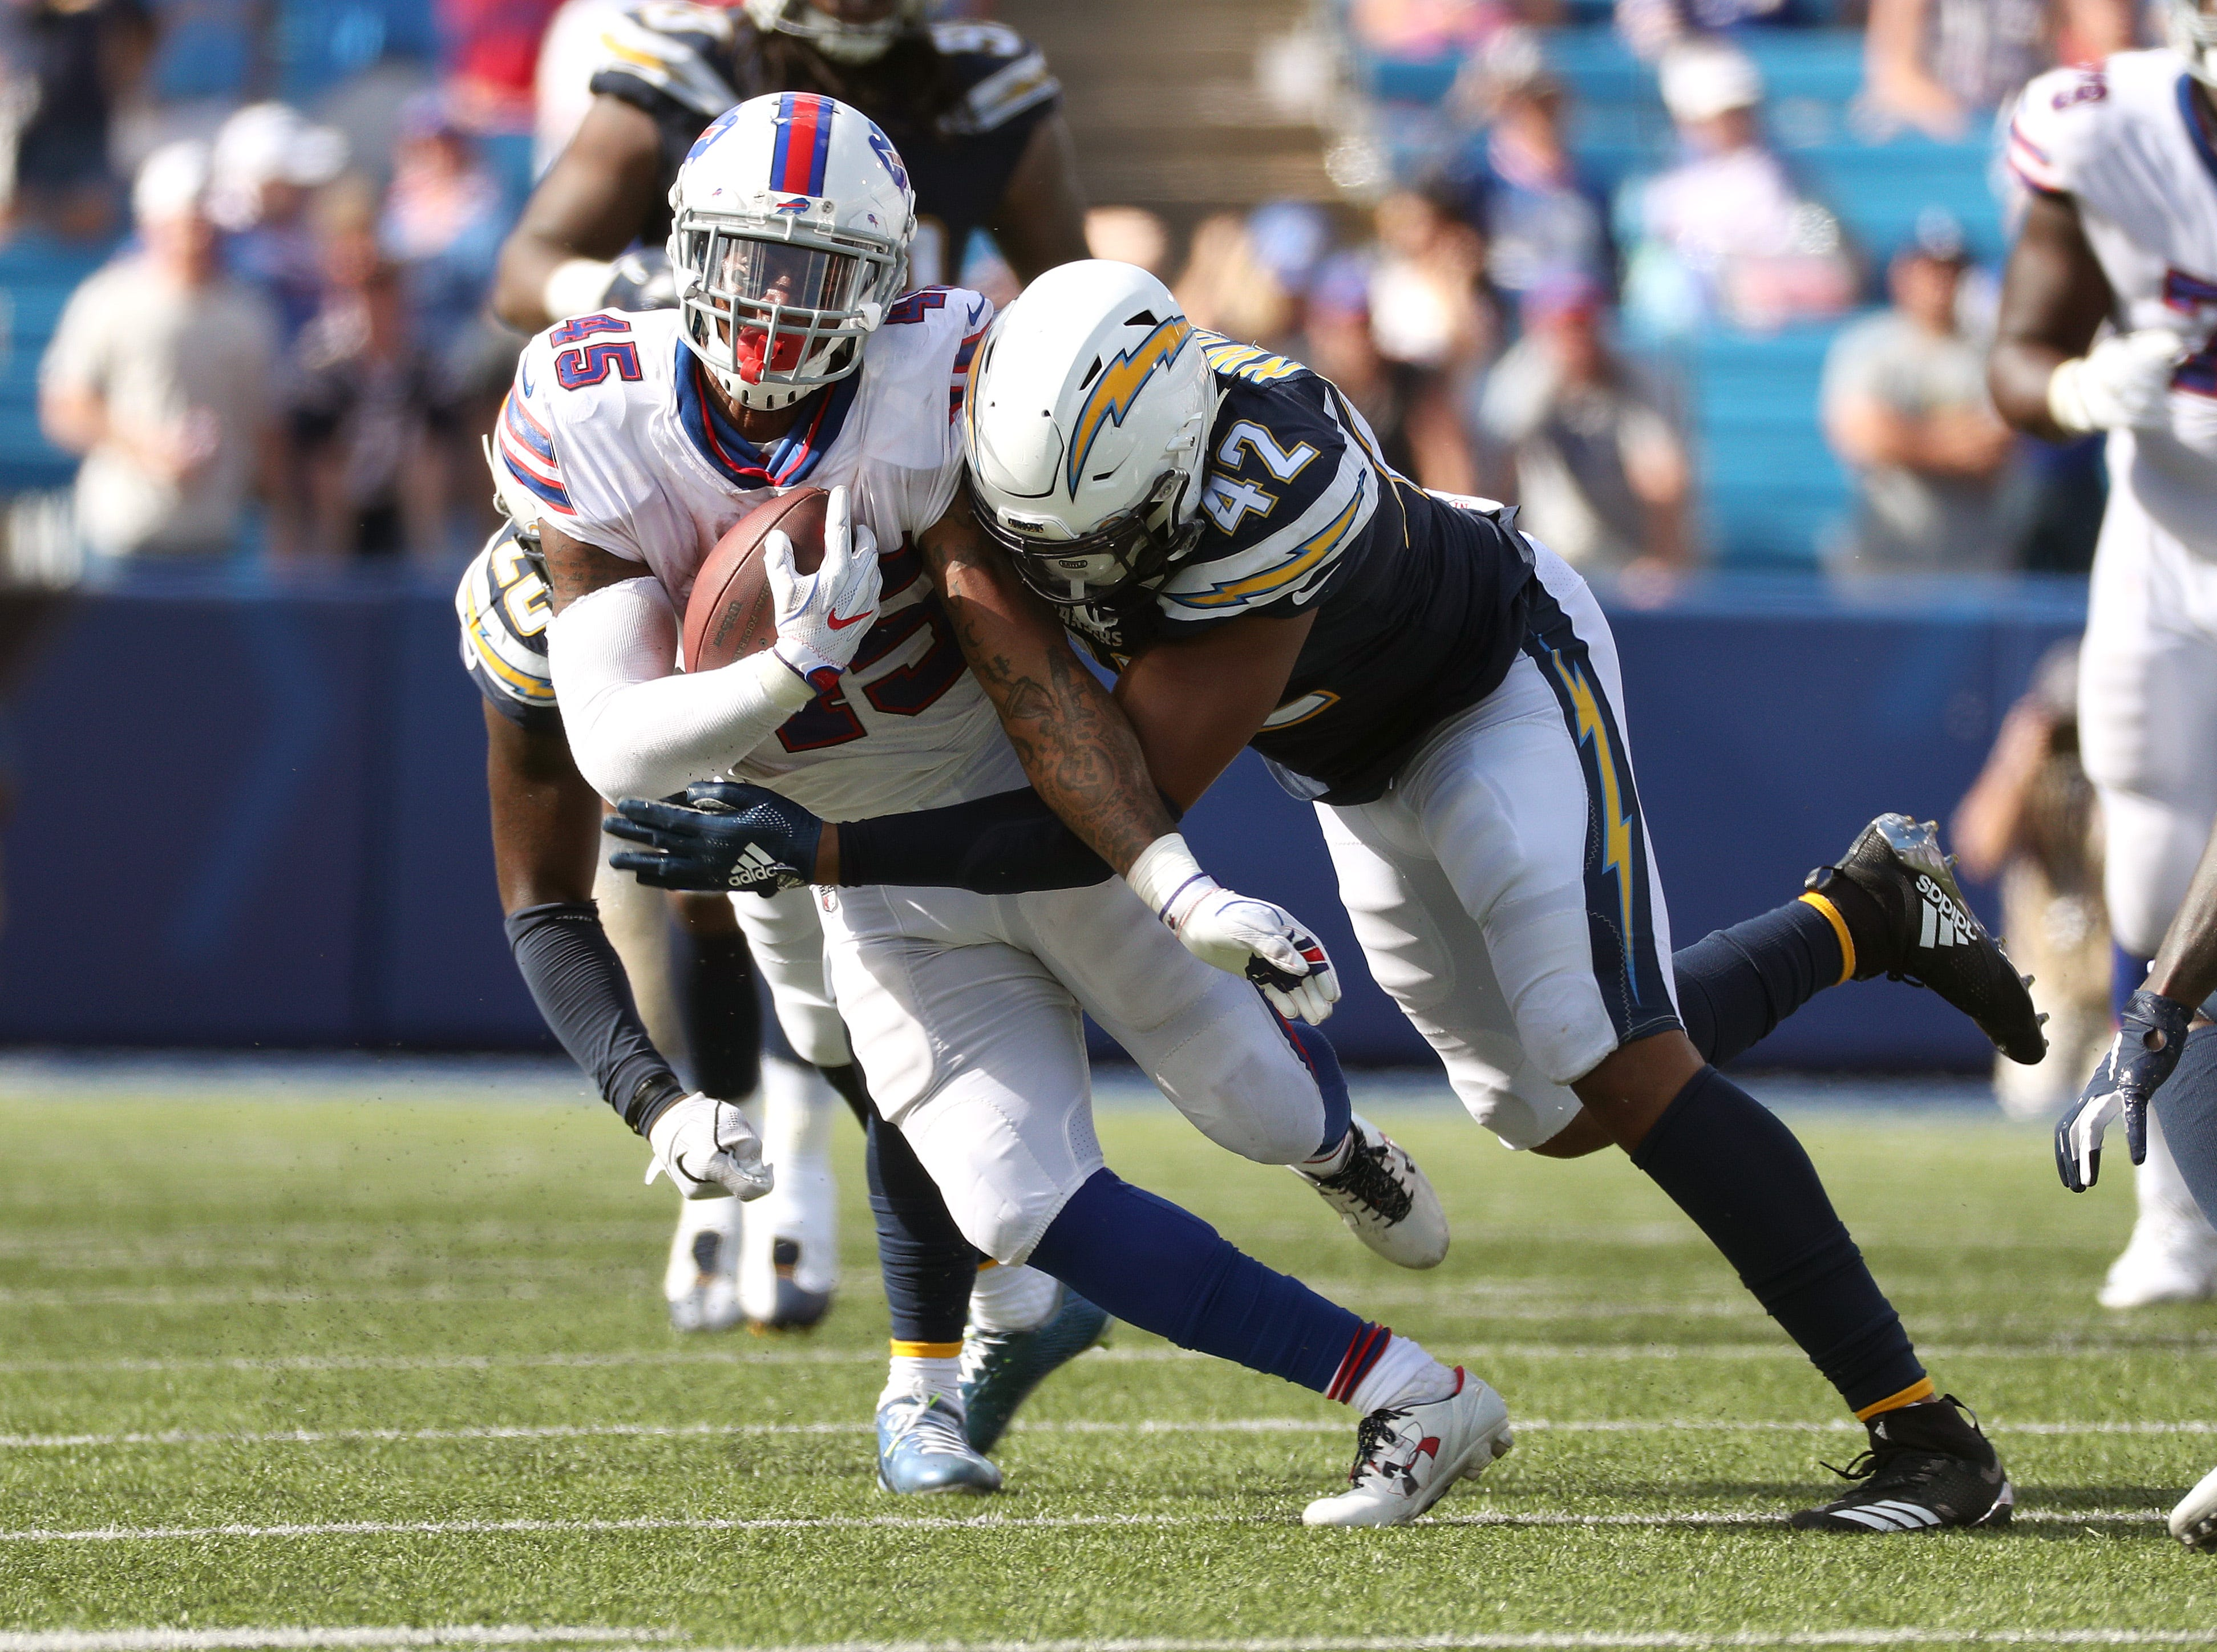 Bills running back Marcus Murphy is hit by Chargers Uchenna Nwosu.